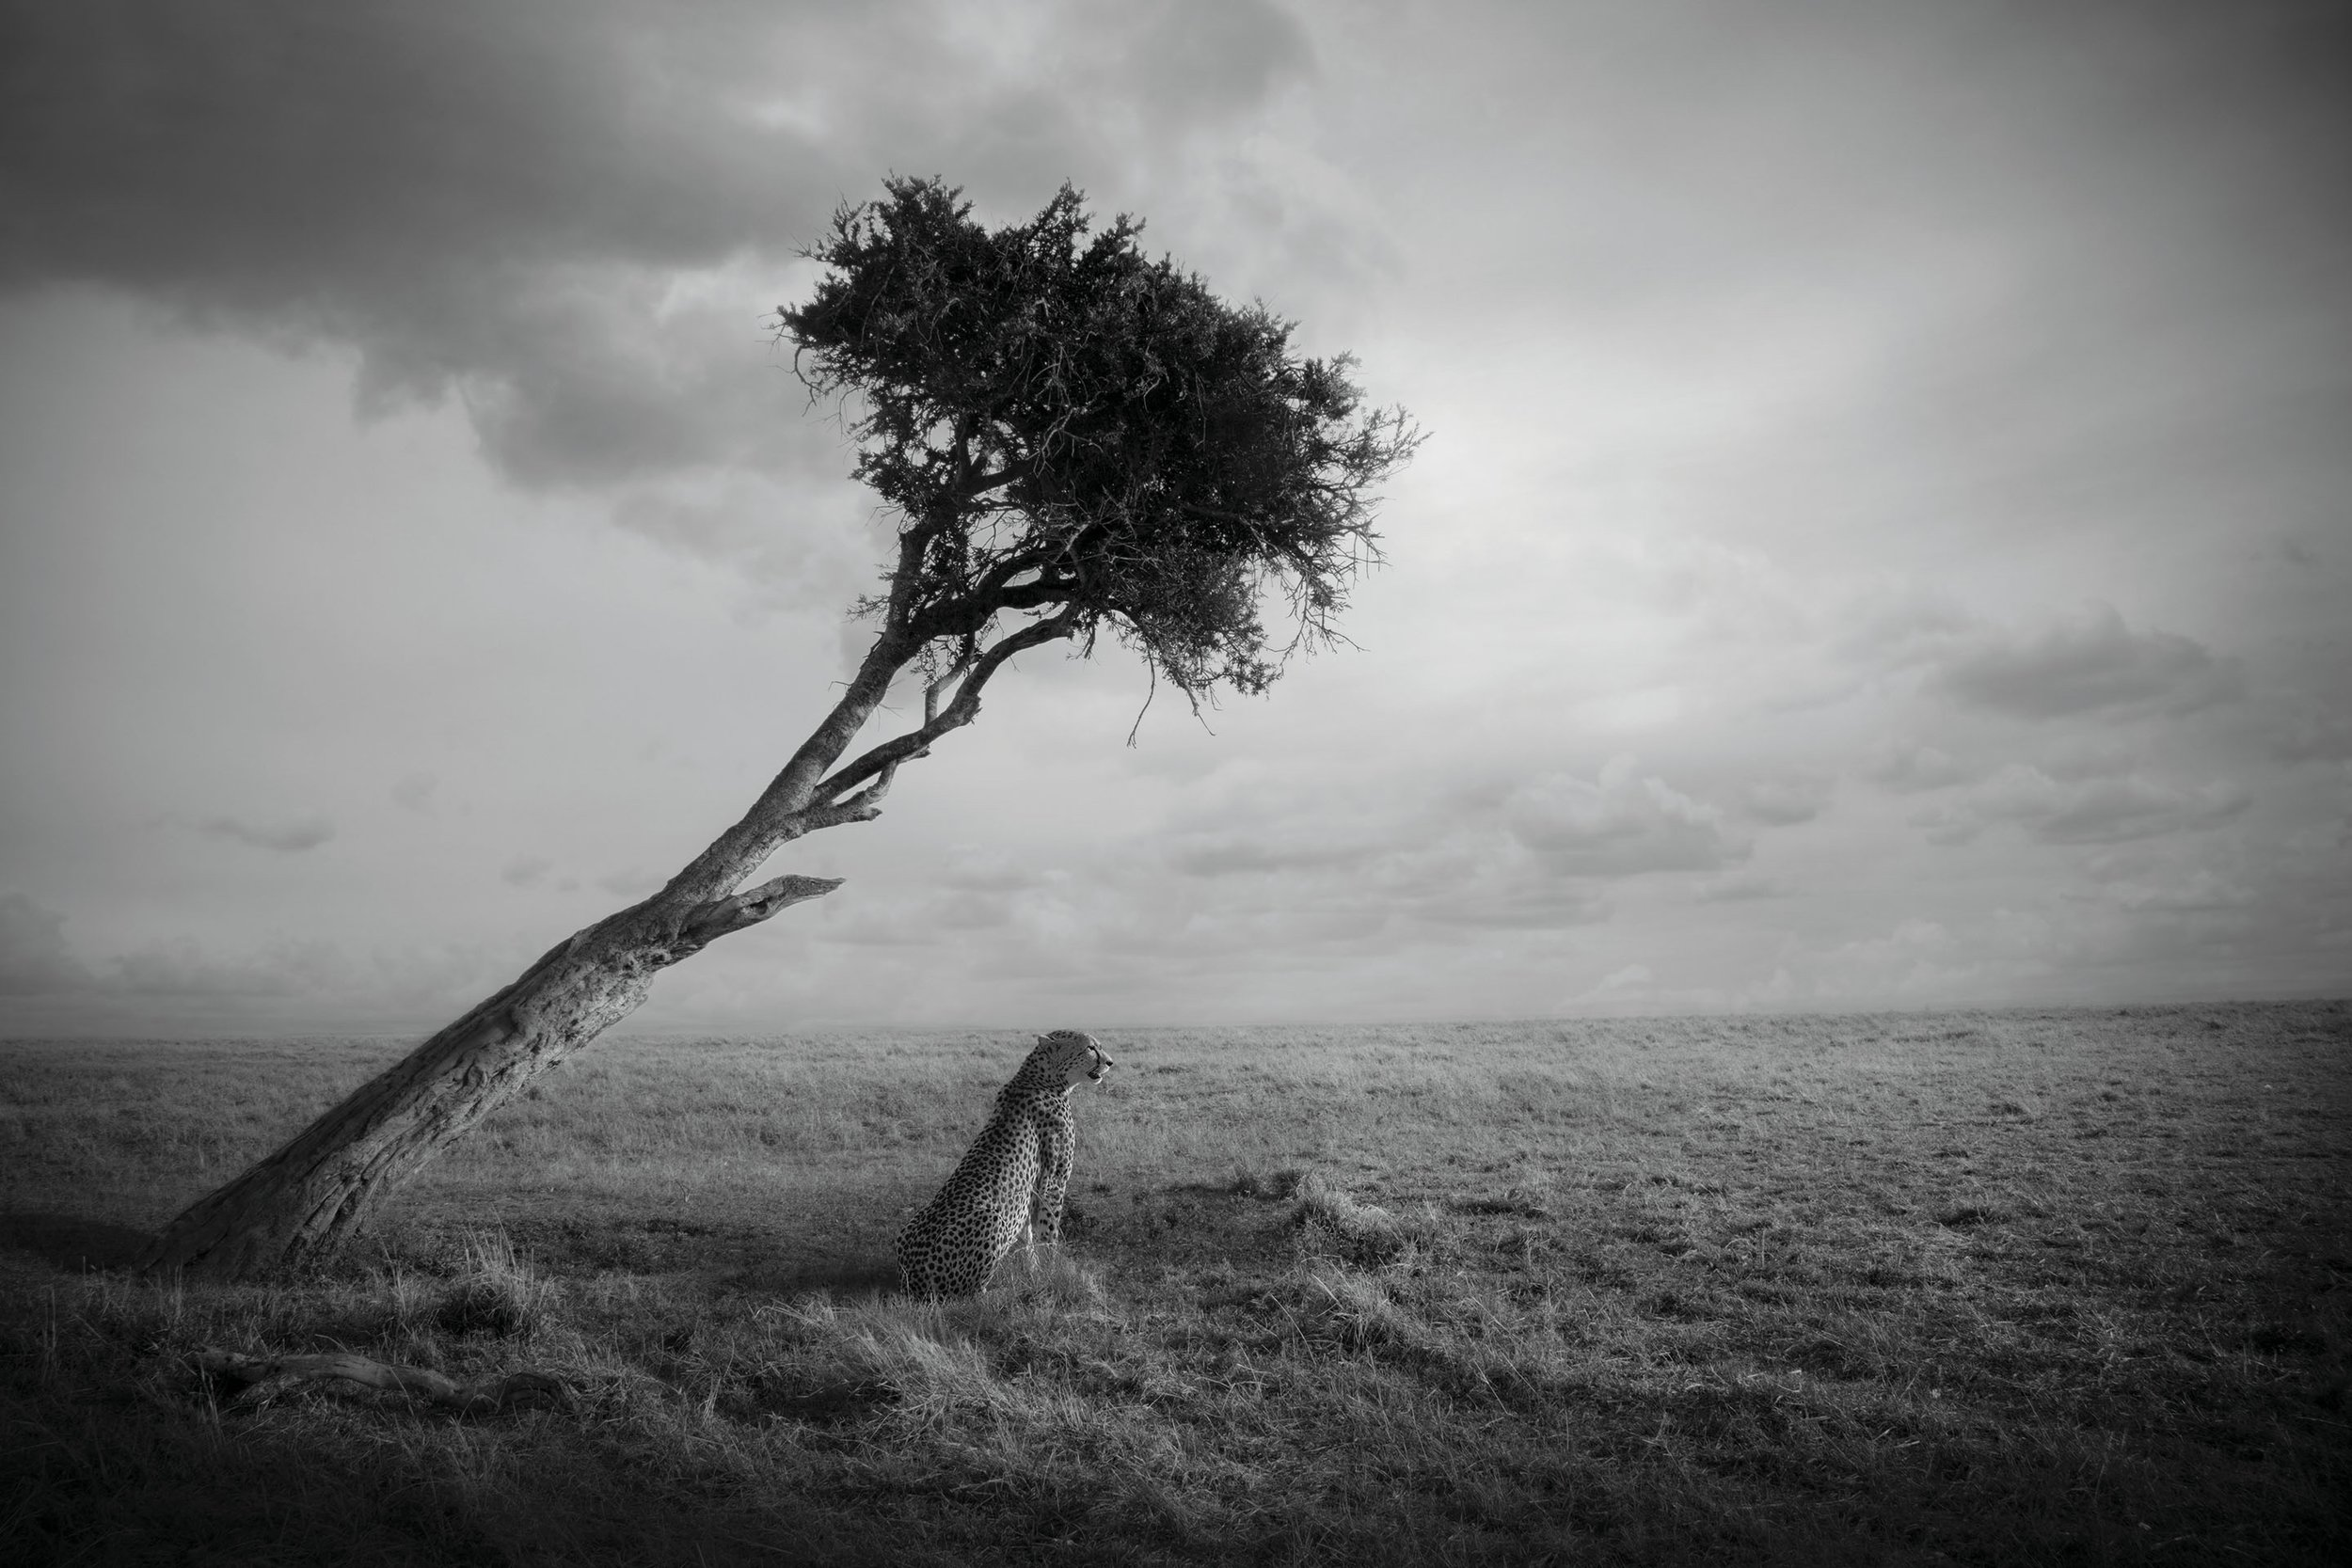 Nirvana, Masai Mara, Kenya, 2017  By Björn Persson  Available in 6 different sizes, Price from 10.000 SEK